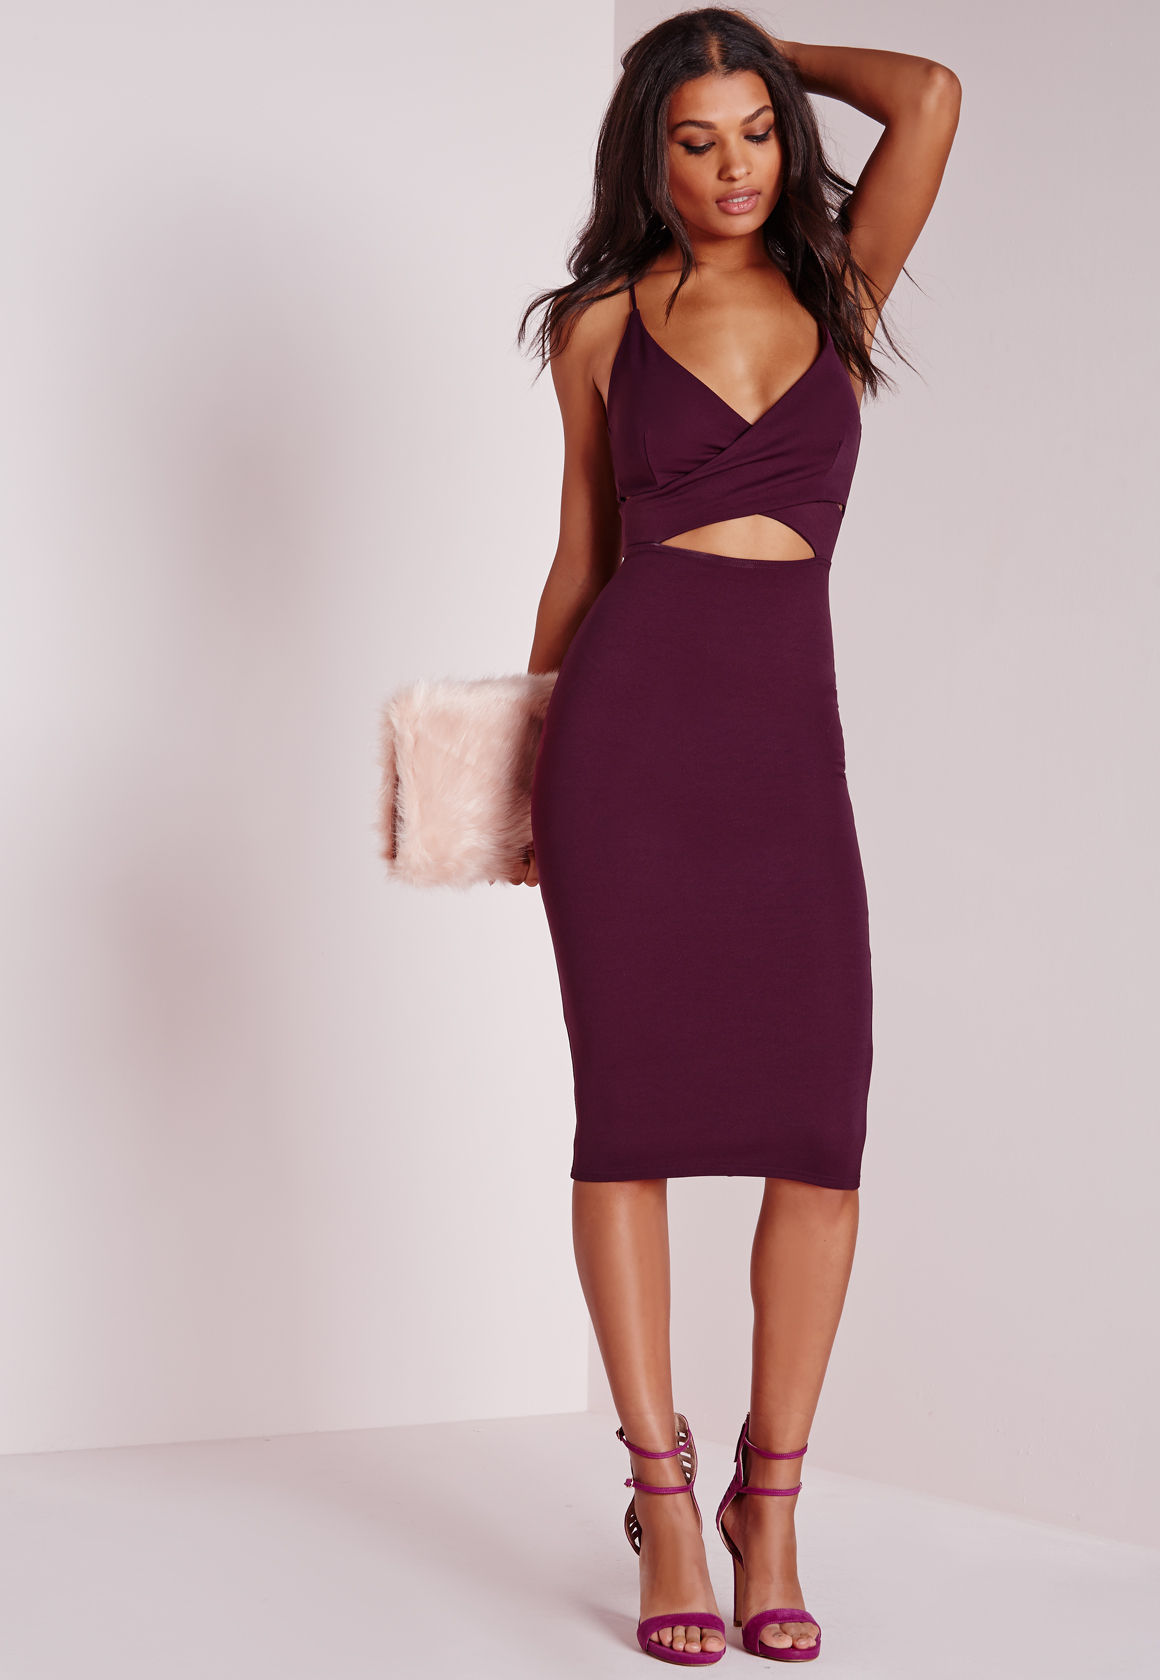 It's party time ladies, and sgmgqhay.gq has the perfect dress to impress. Hot party dresses and sexy cocktail dresses for any occasion in a wide selection of styles, fits, and colors so you can find the perfect dress!